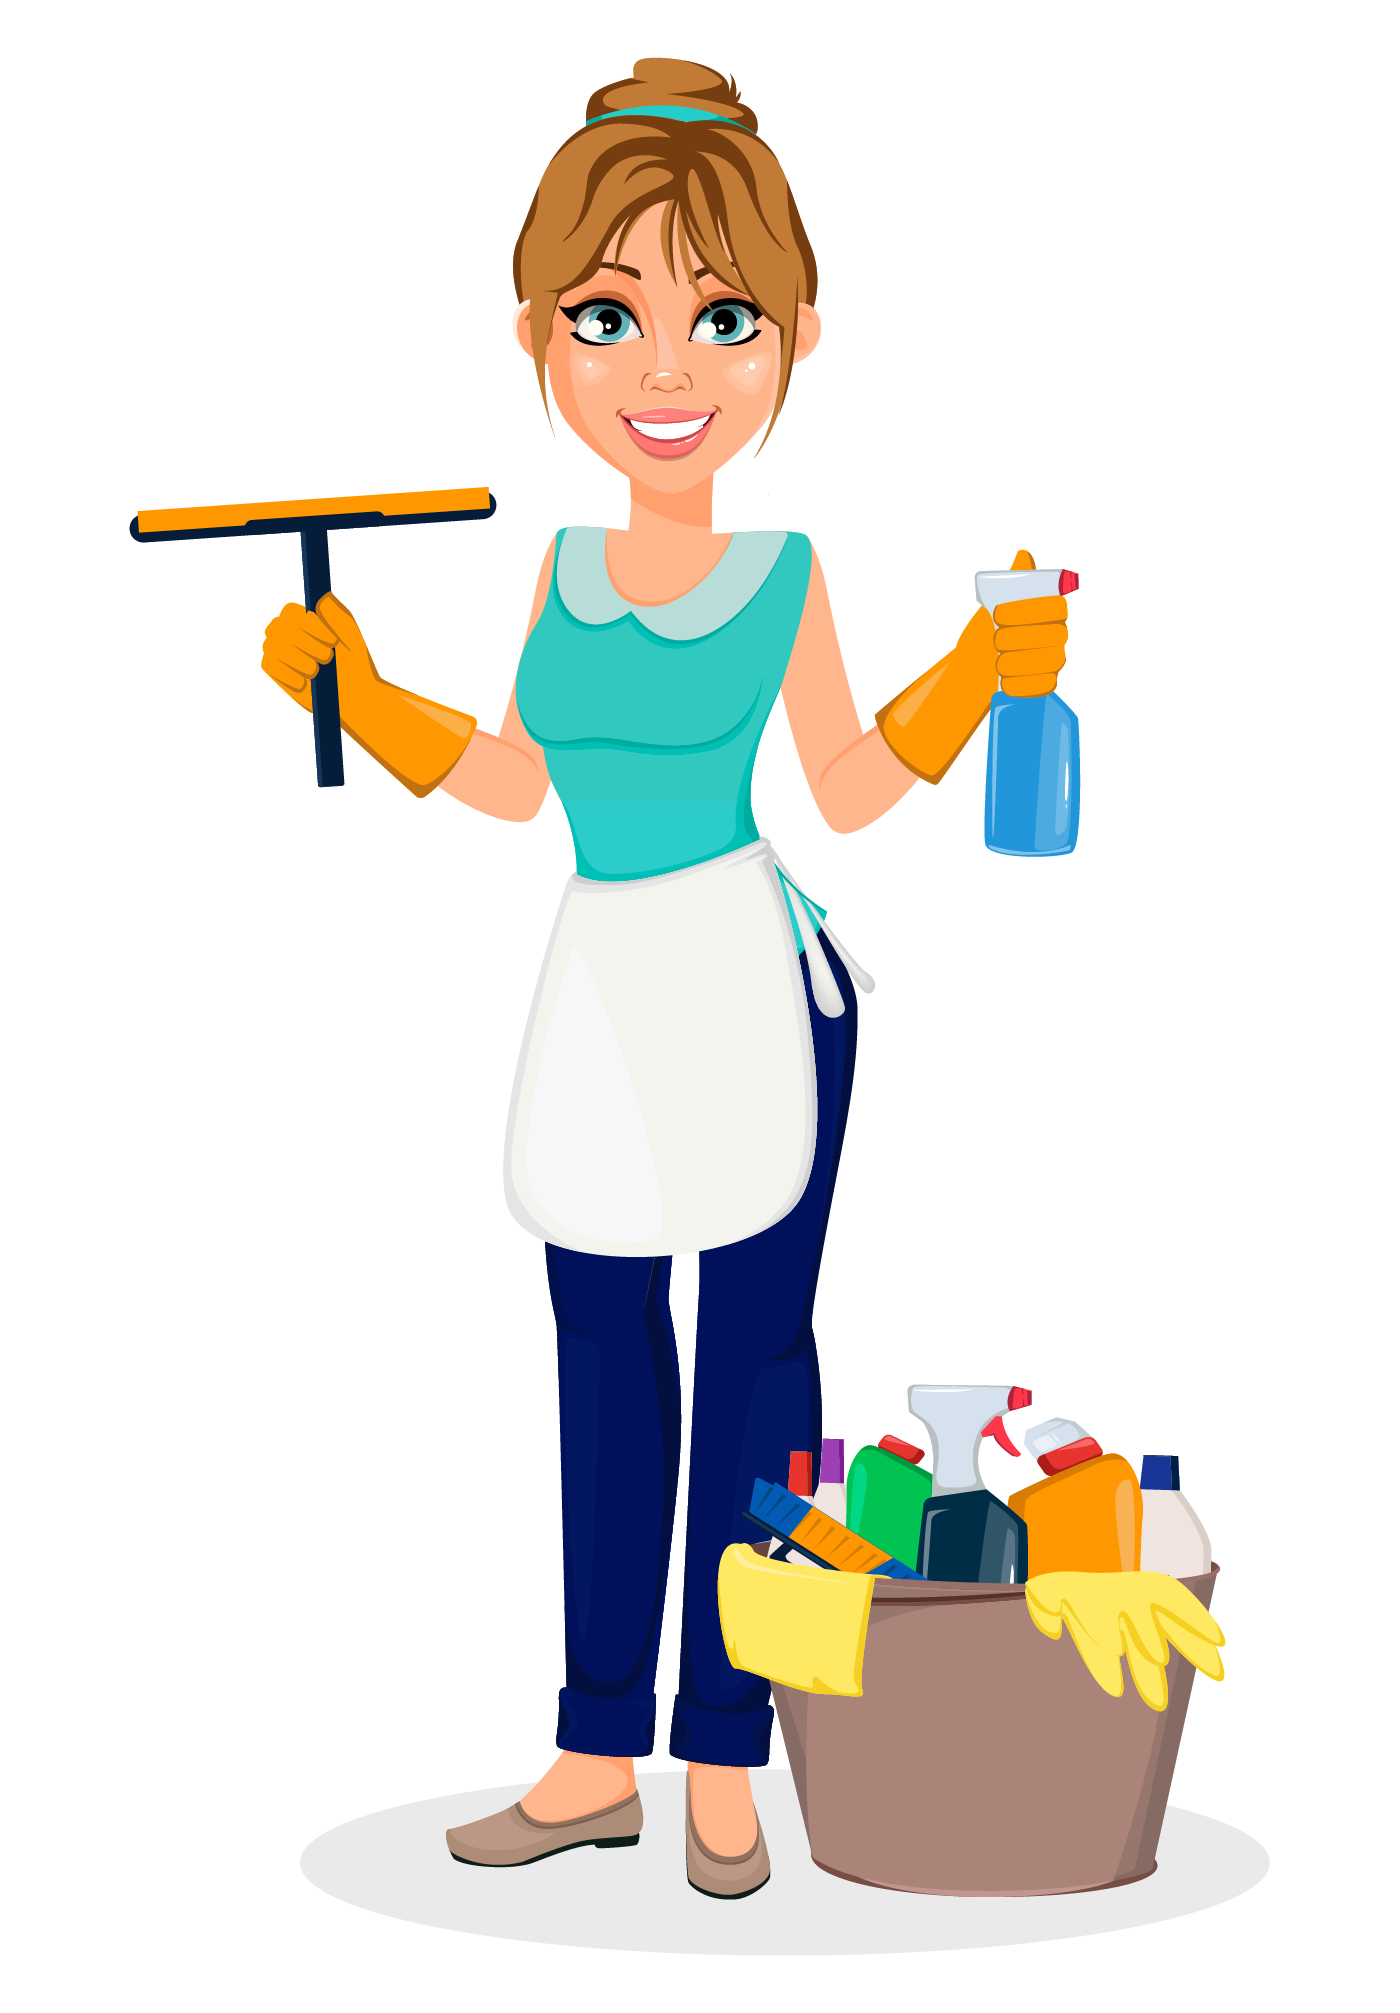 Home Cleaning Service in Frisco, Plano, Allen, McKinney, TX